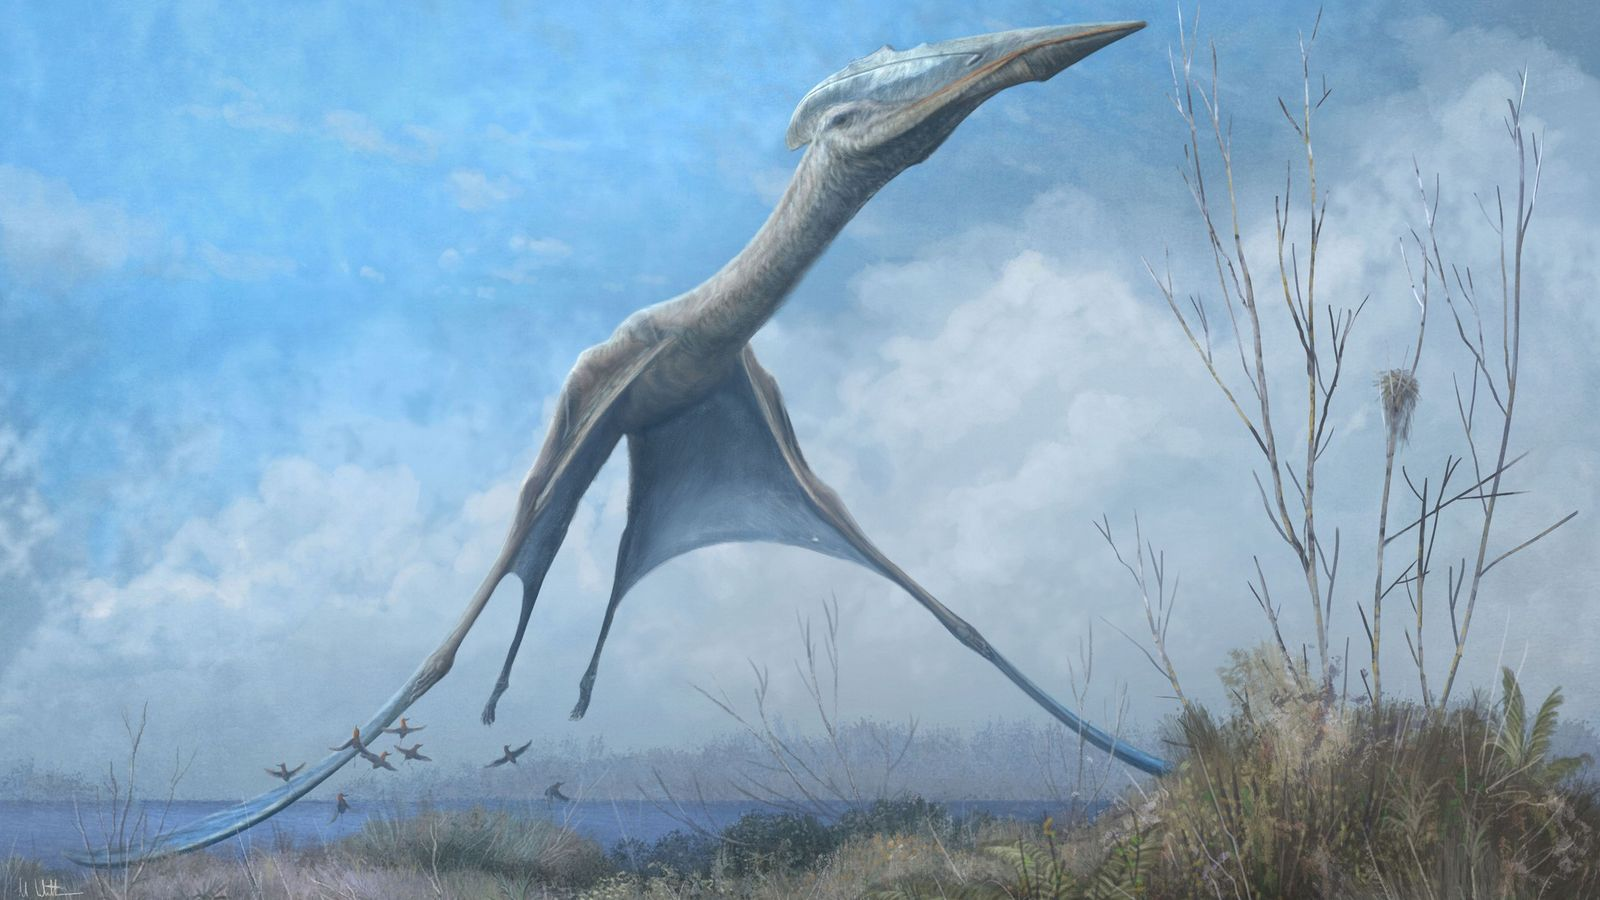 An azhdarchid pterosaur takes flight in Romainia in an illustration. Fossils recovered from the fire-damaged Museu ...